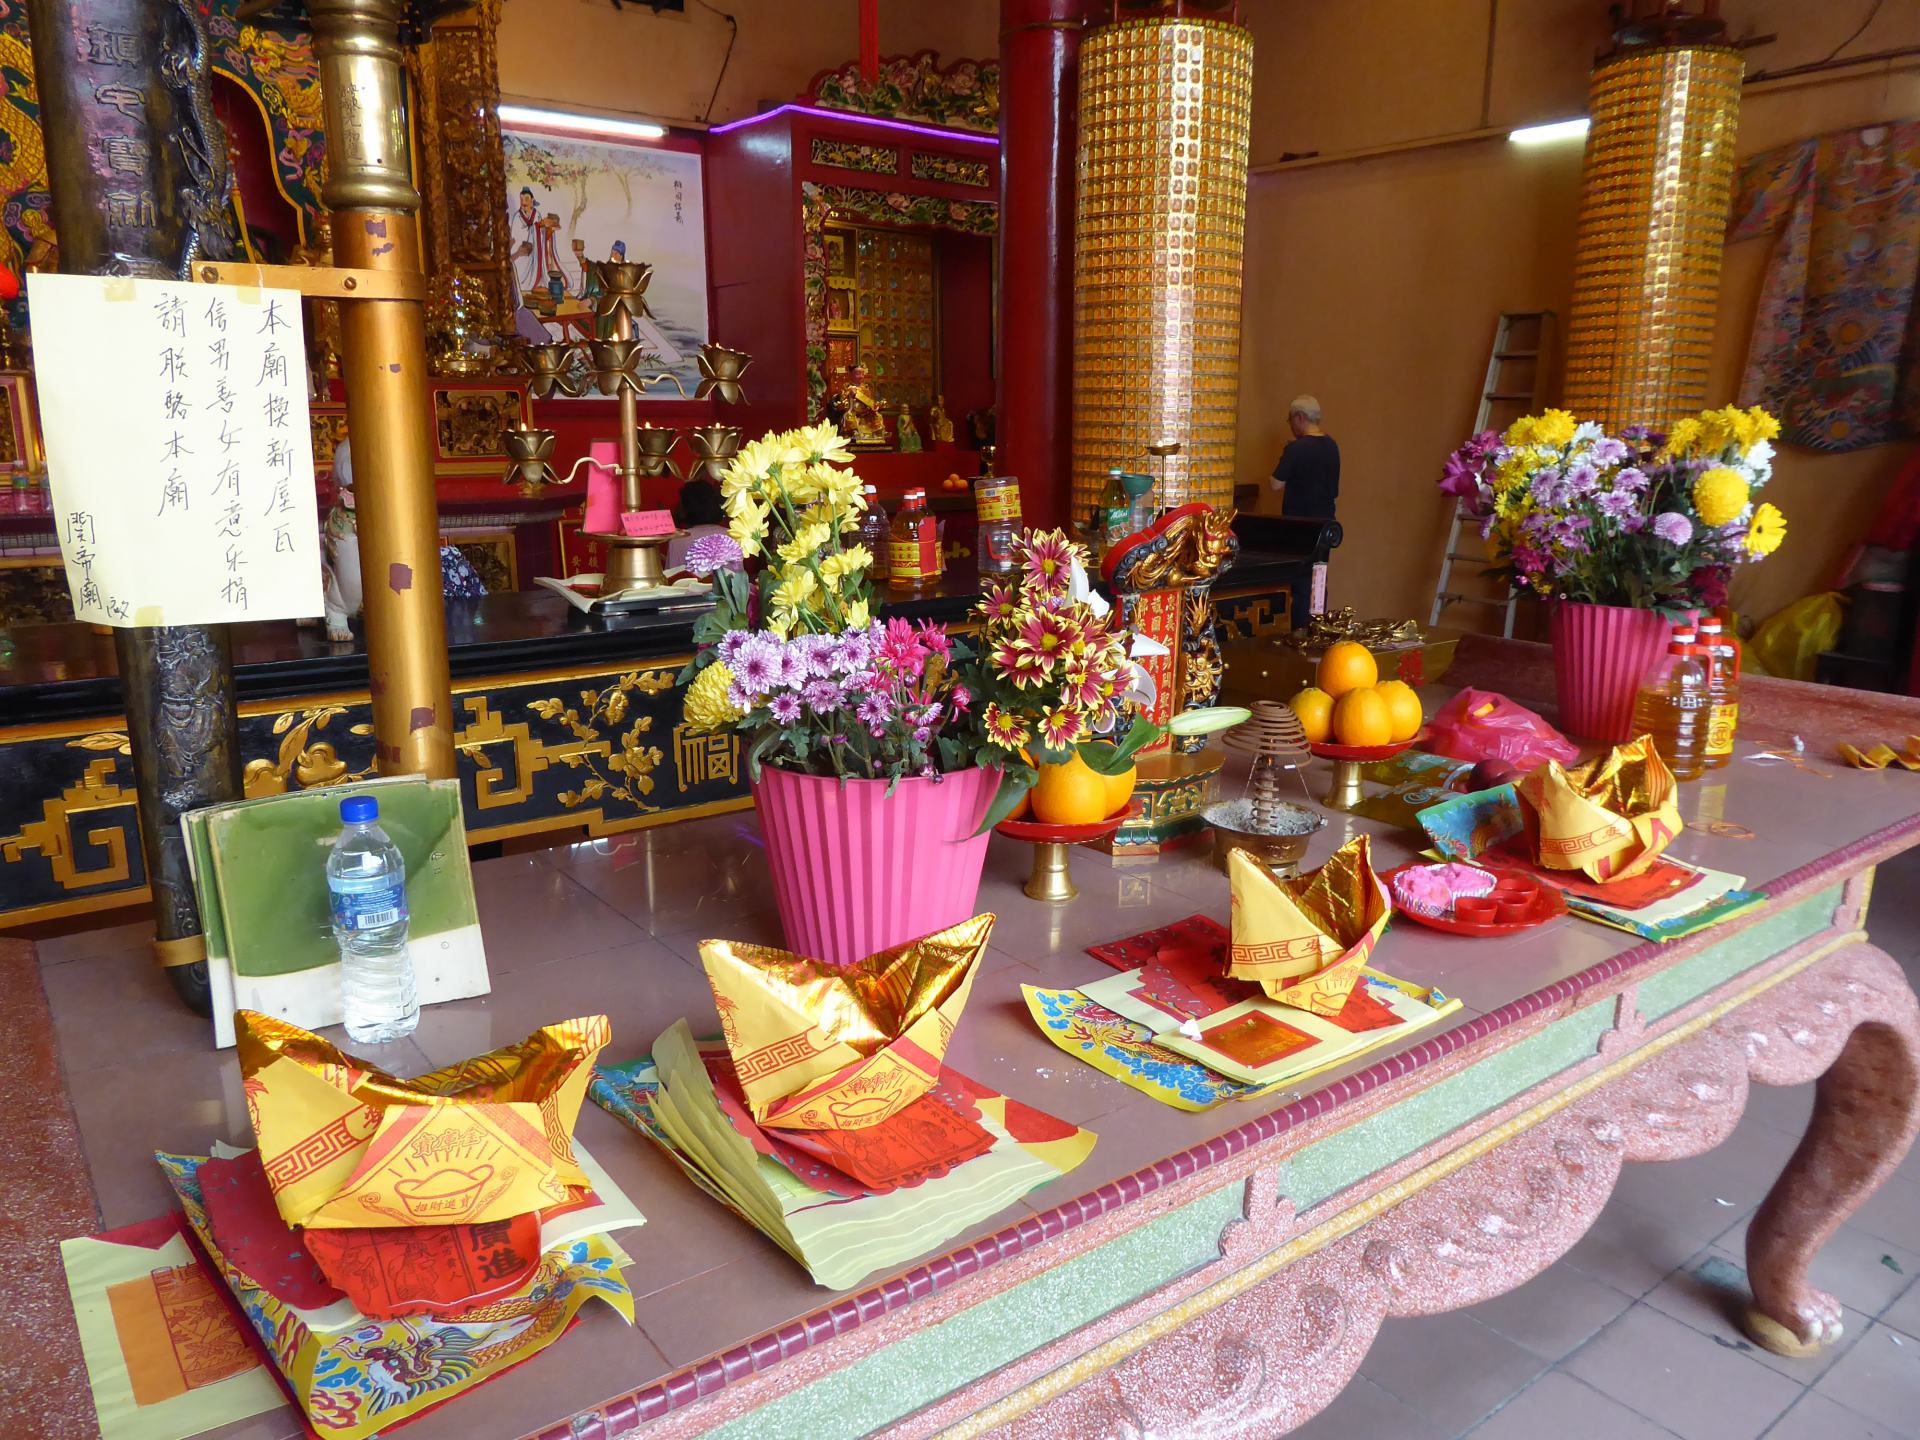 Showing some of the decorations inside Guan Di Temple in China town, Kuala Lumpur